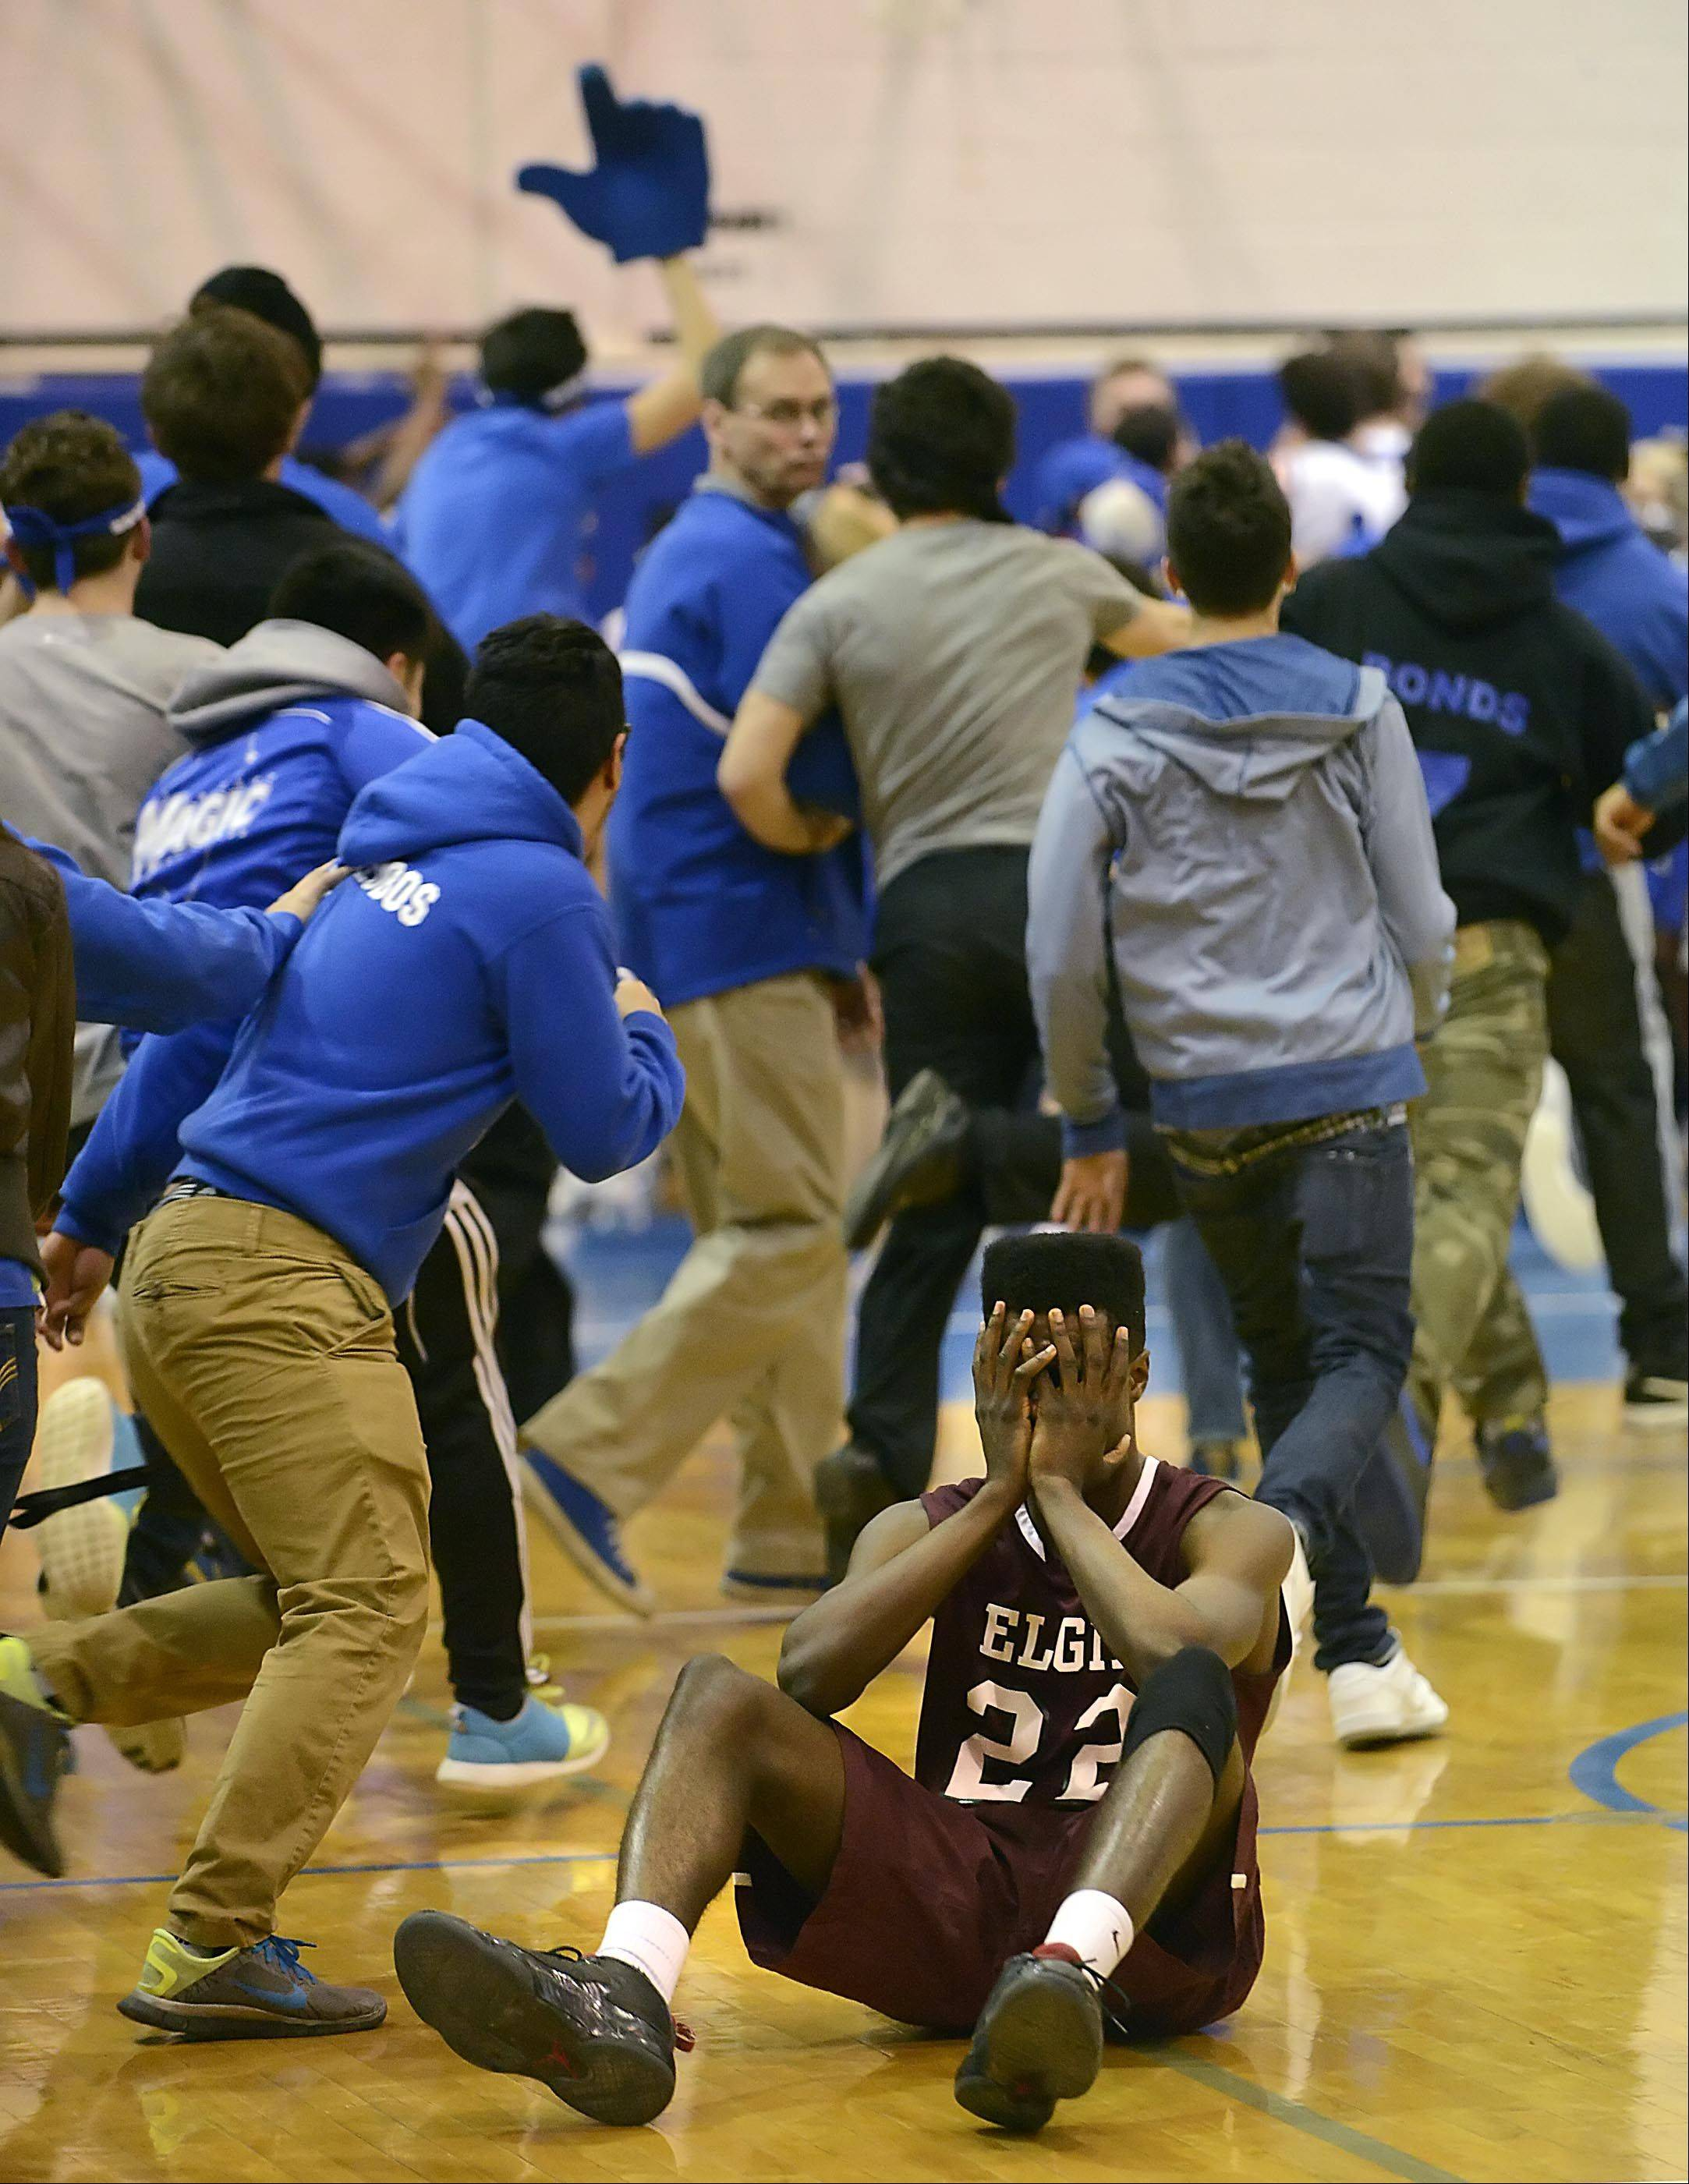 Elgin's Desmond Sanders covers his face as Larkin students rush the floor as the Royals beat the Maroons in the final seconds Friday at Larkin High School in Elgin.